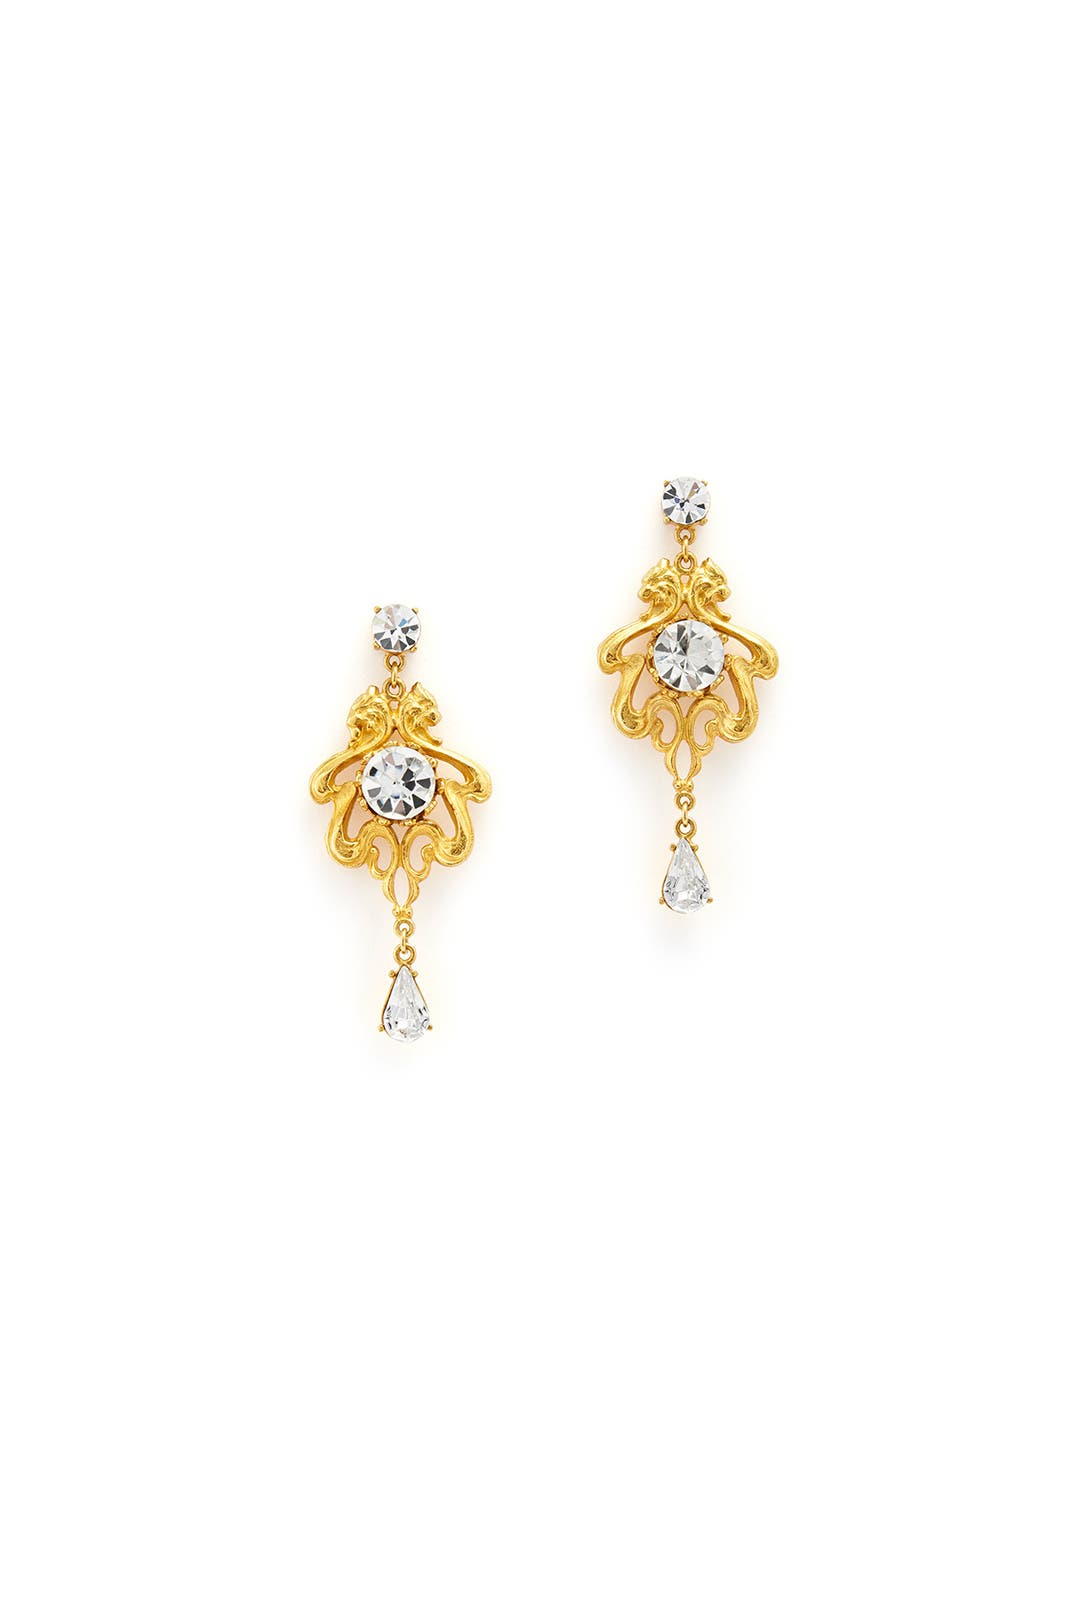 Regal Gem Chandelier Earrings by Tom Binns